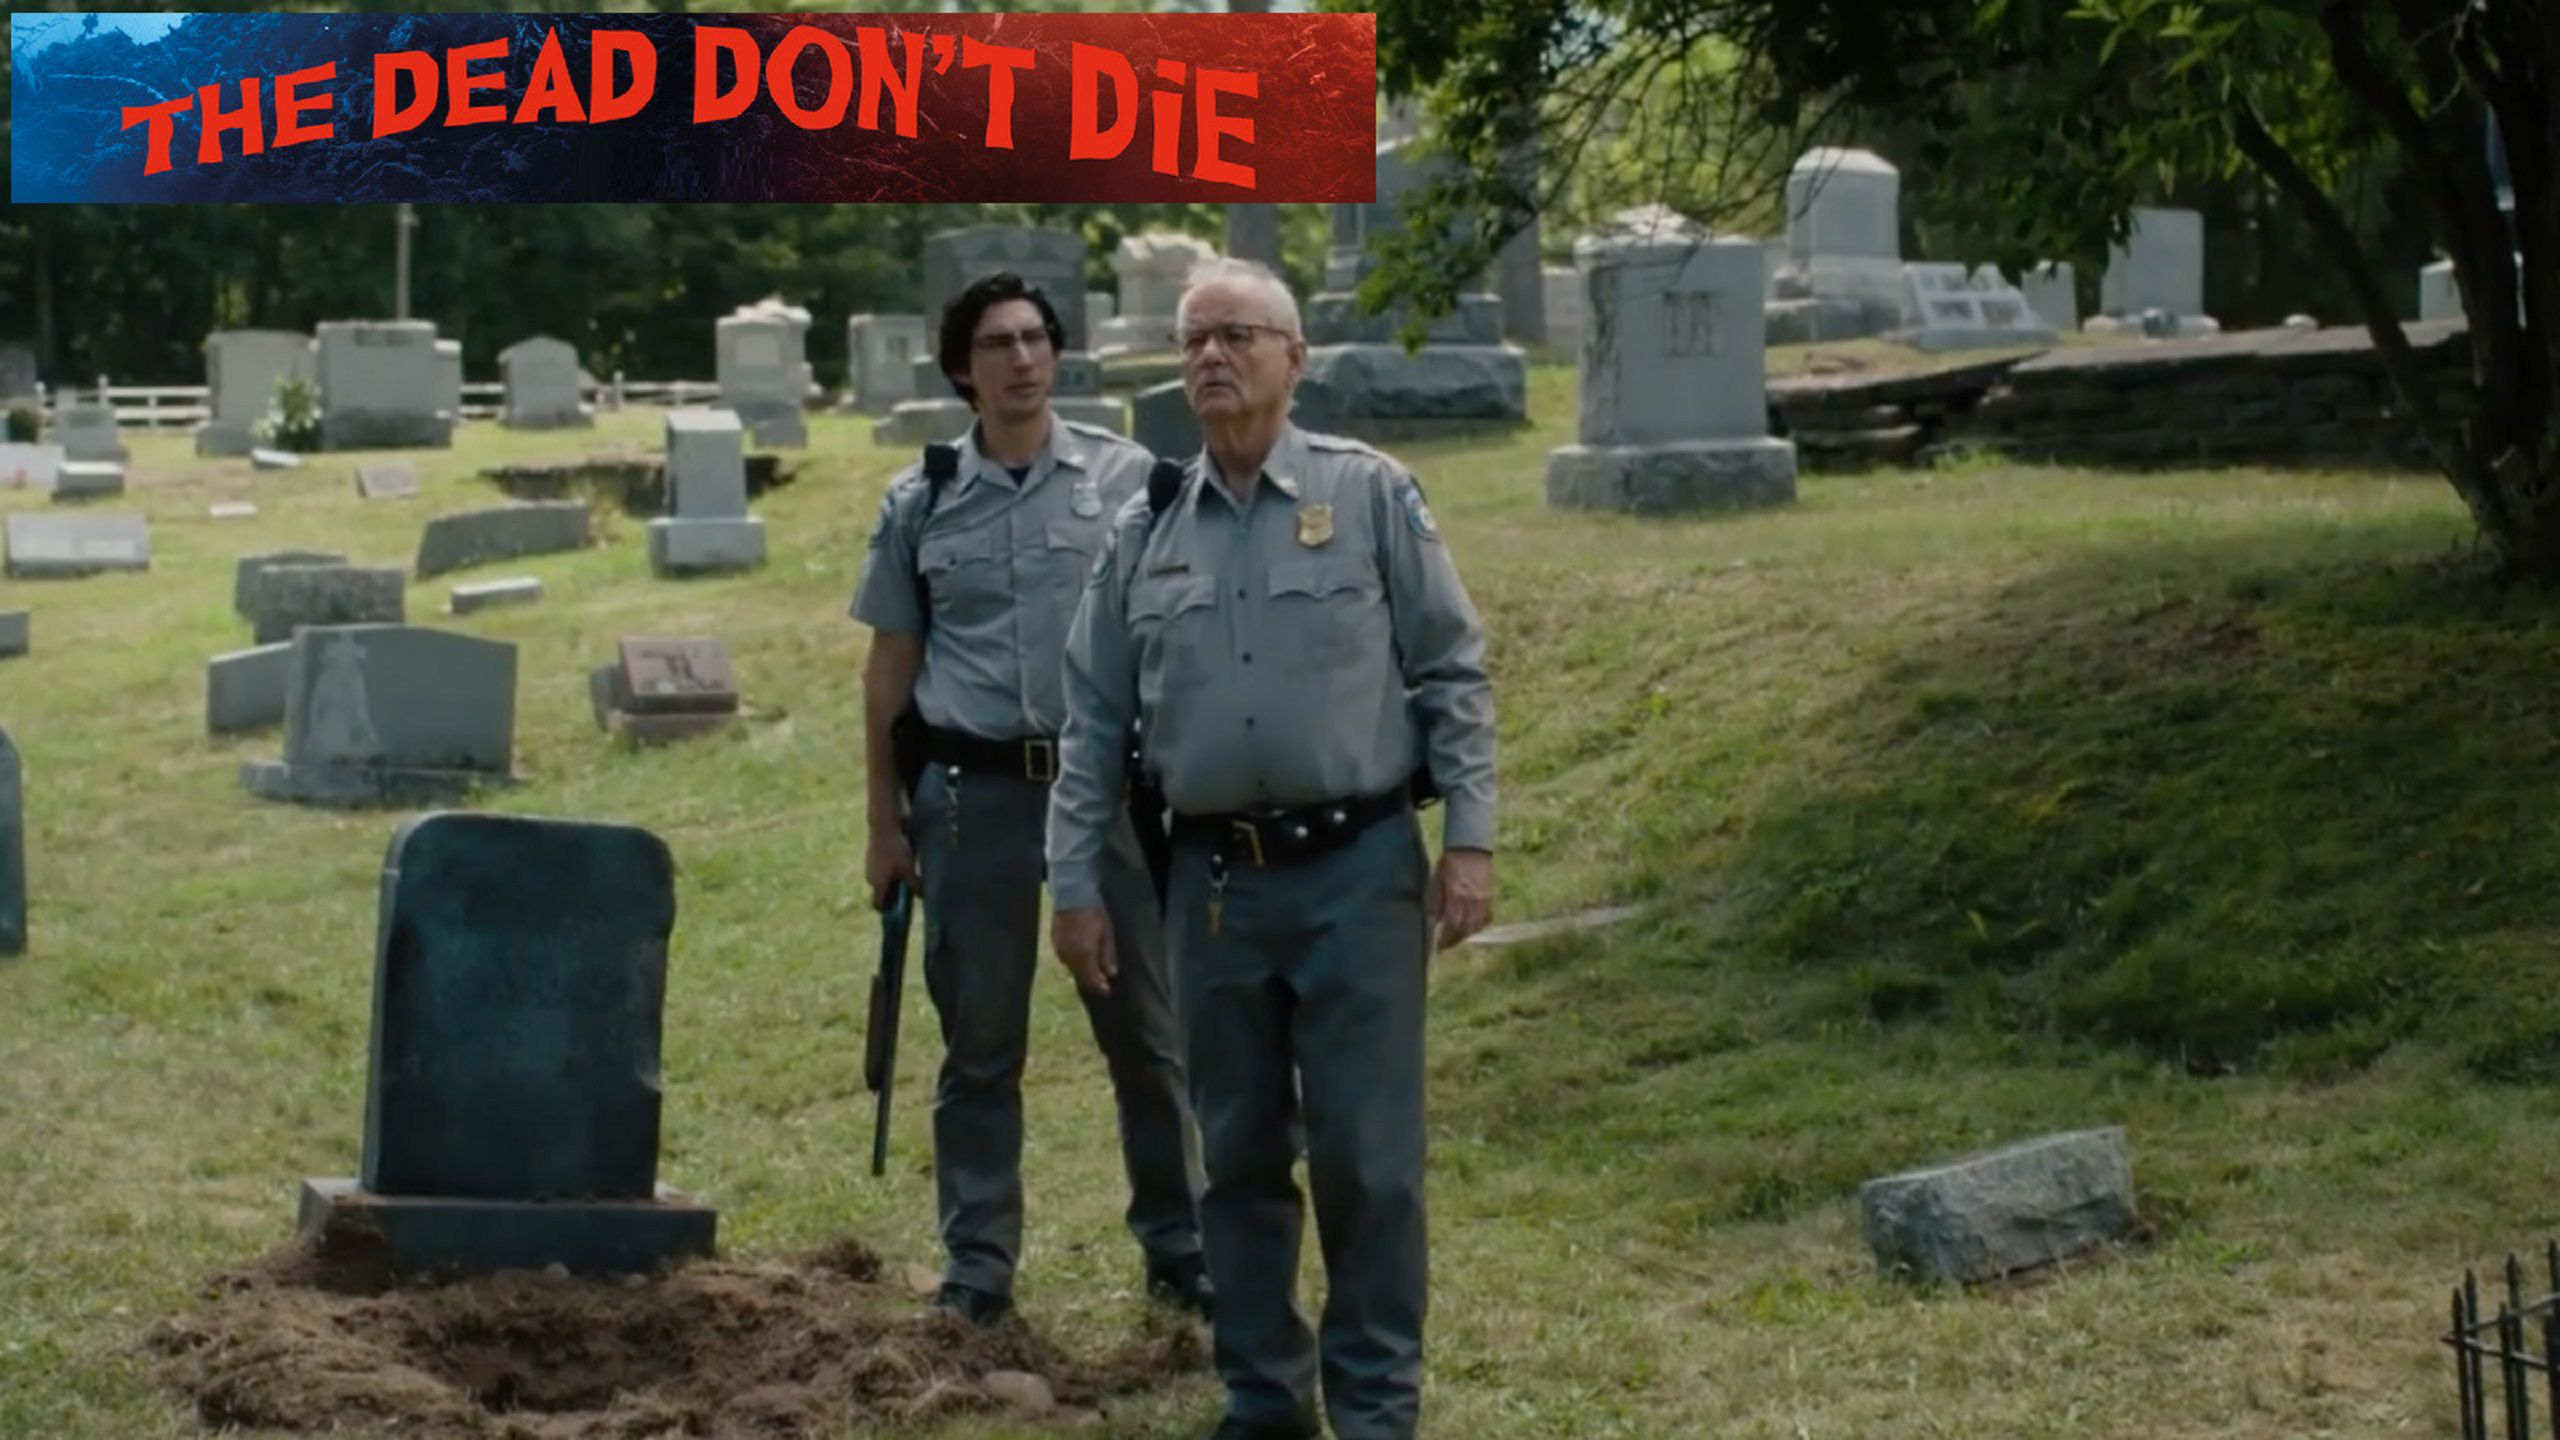 The Dead dont Die (2019) Cemetery